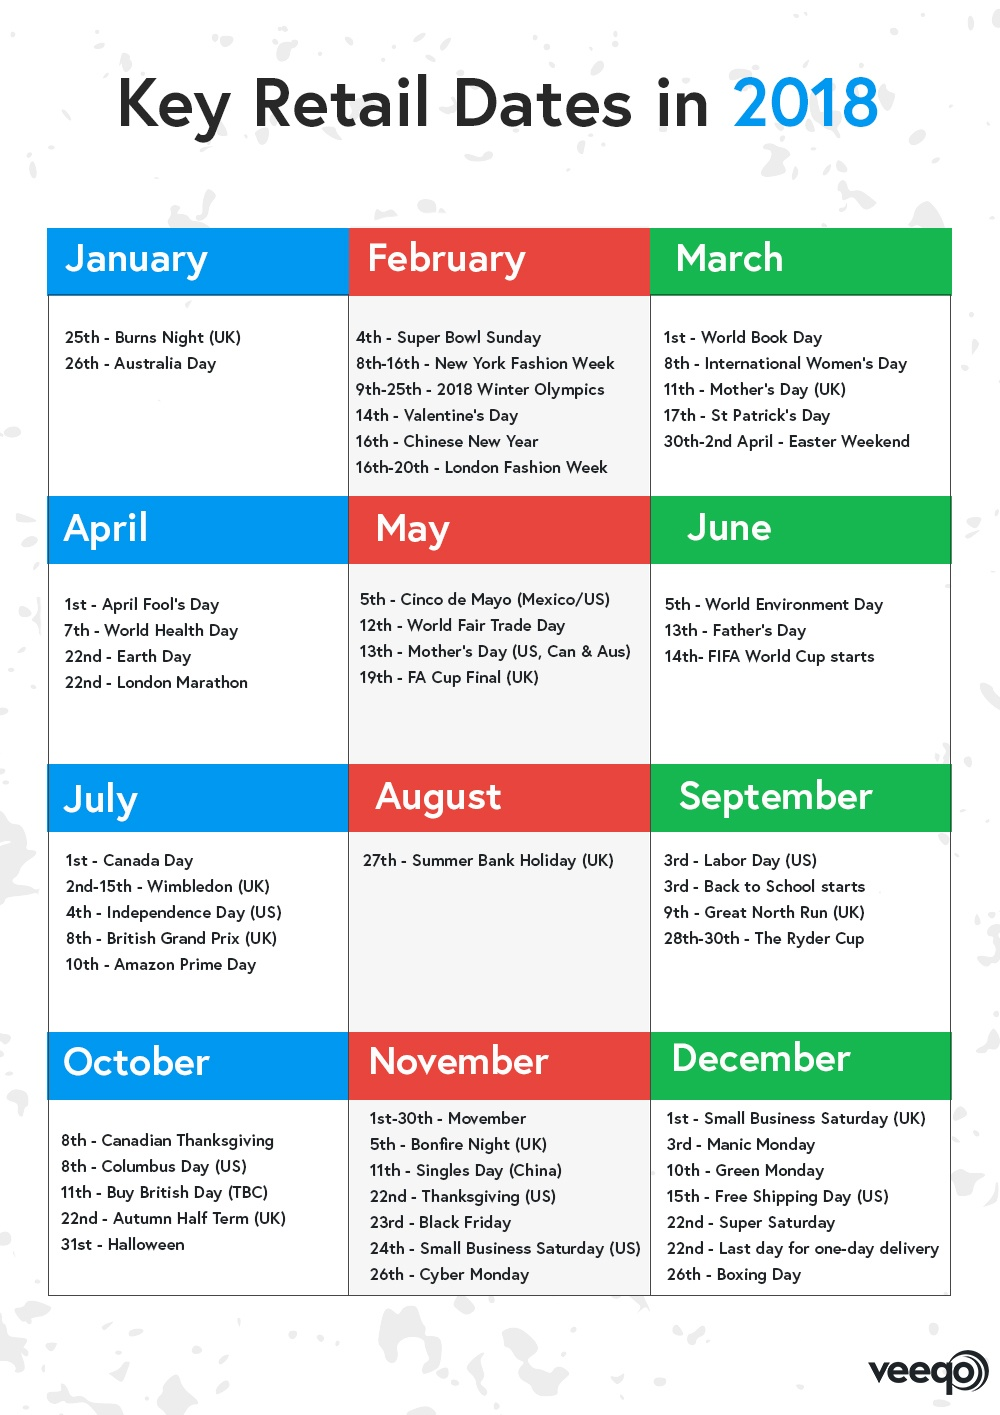 Retail Marketing Calendar 2018 Key Dates Veeqo Blog